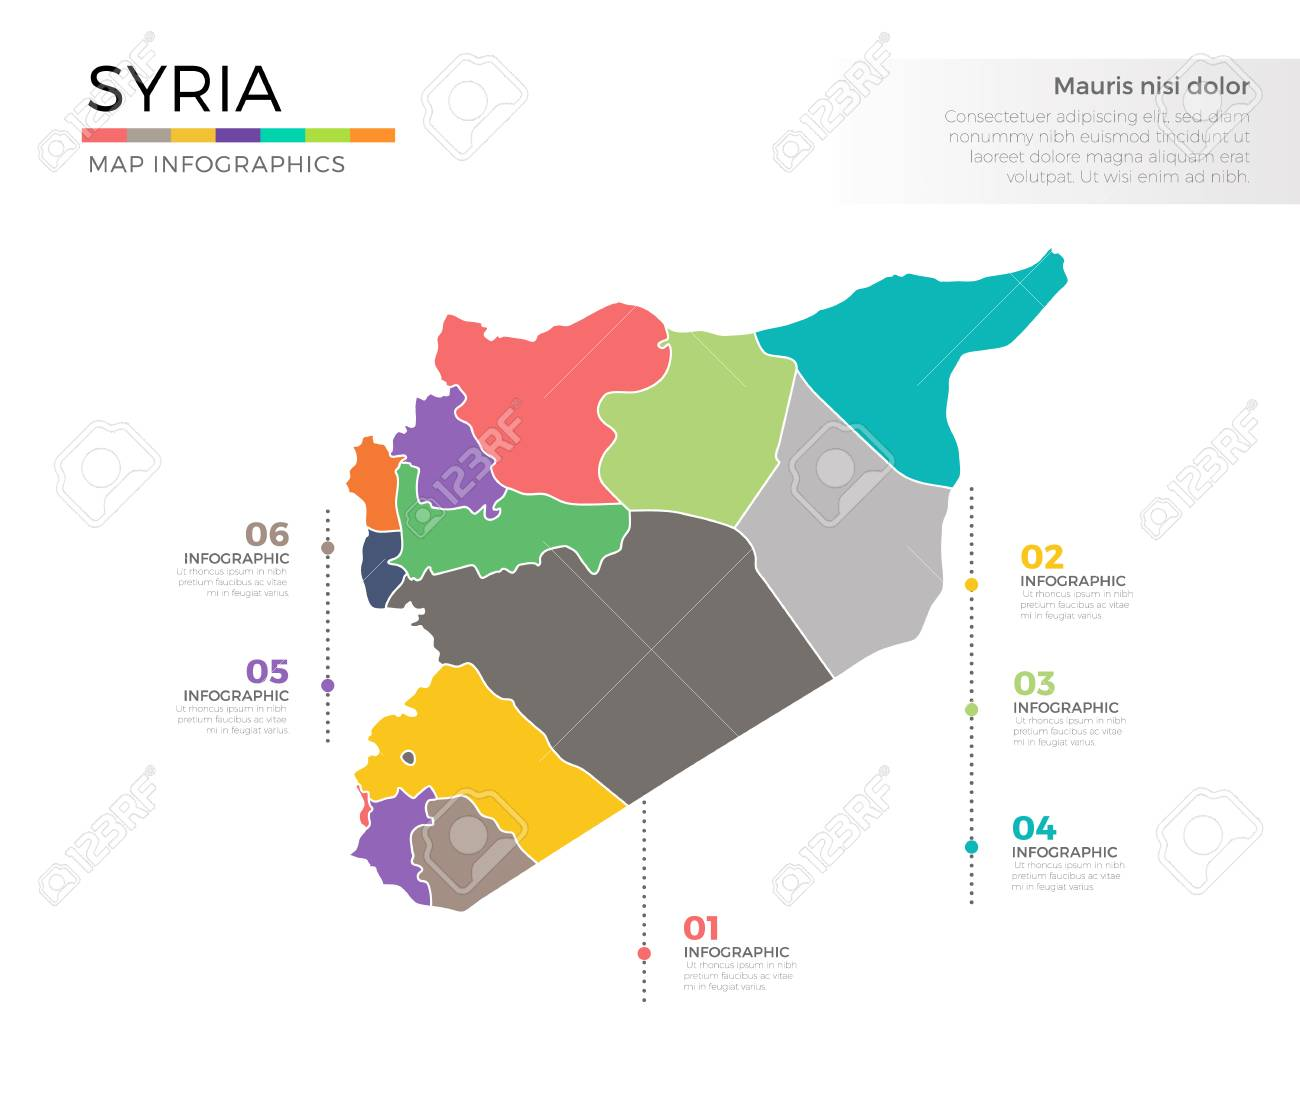 Syria Country Map Infographic Colored Vector Template With Regions And Pointer Marks Stock